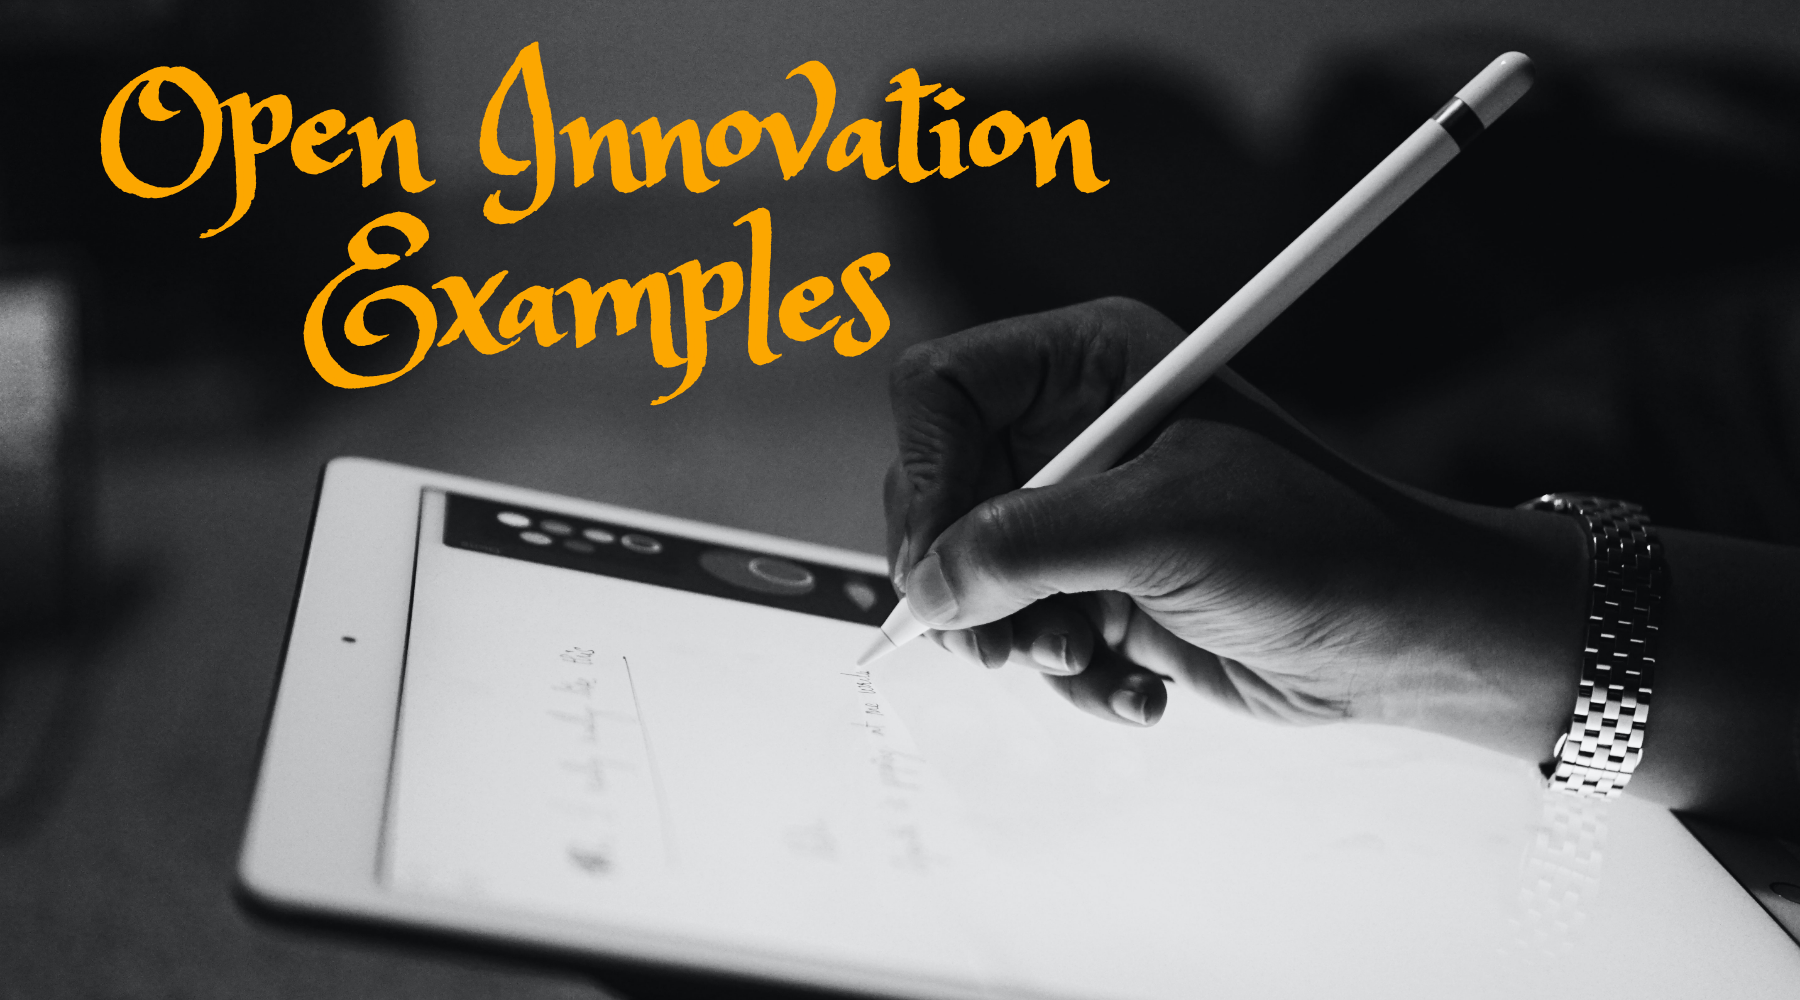 Real World Examples of Open Innovation by Global Organizations